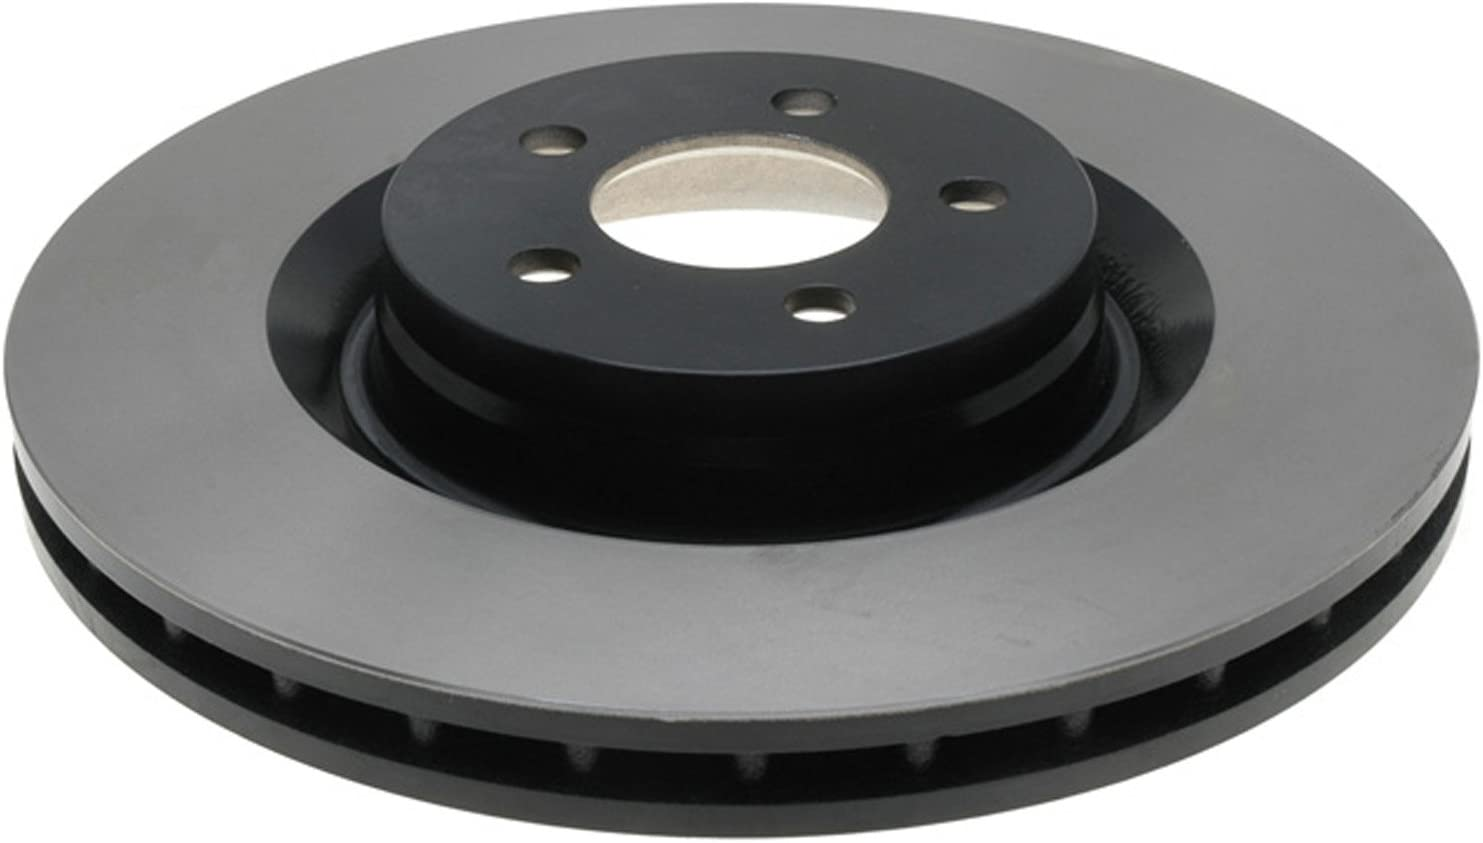 ACDelco Gold 18A2440 Black Hat Brake Disc Front Rotor Industry Kansas City Mall No. 1